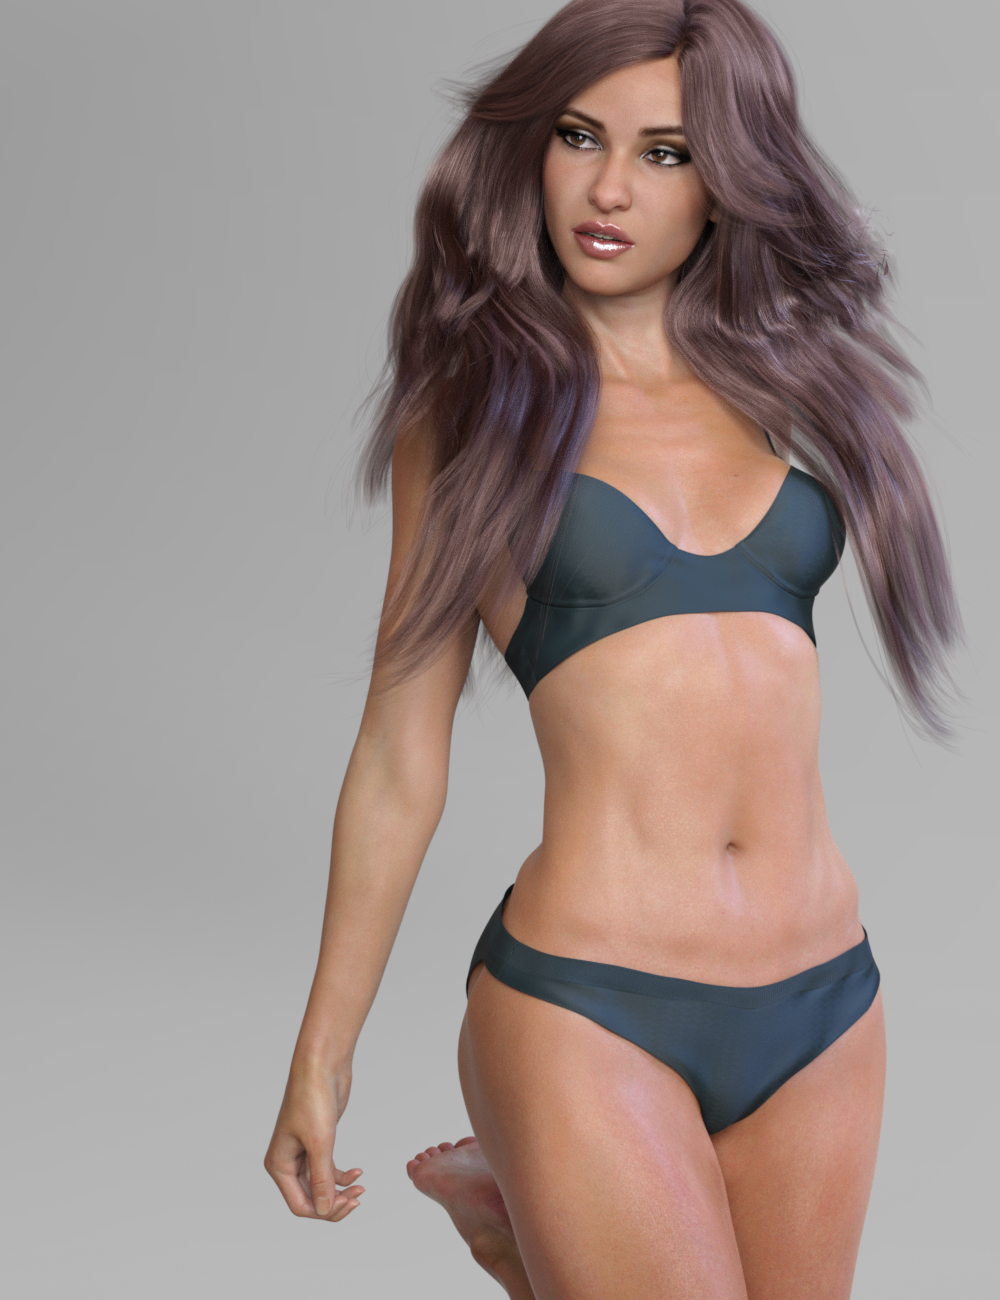 RY Caprice for Victoria 8 by: Raiya, 3D Models by Daz 3D